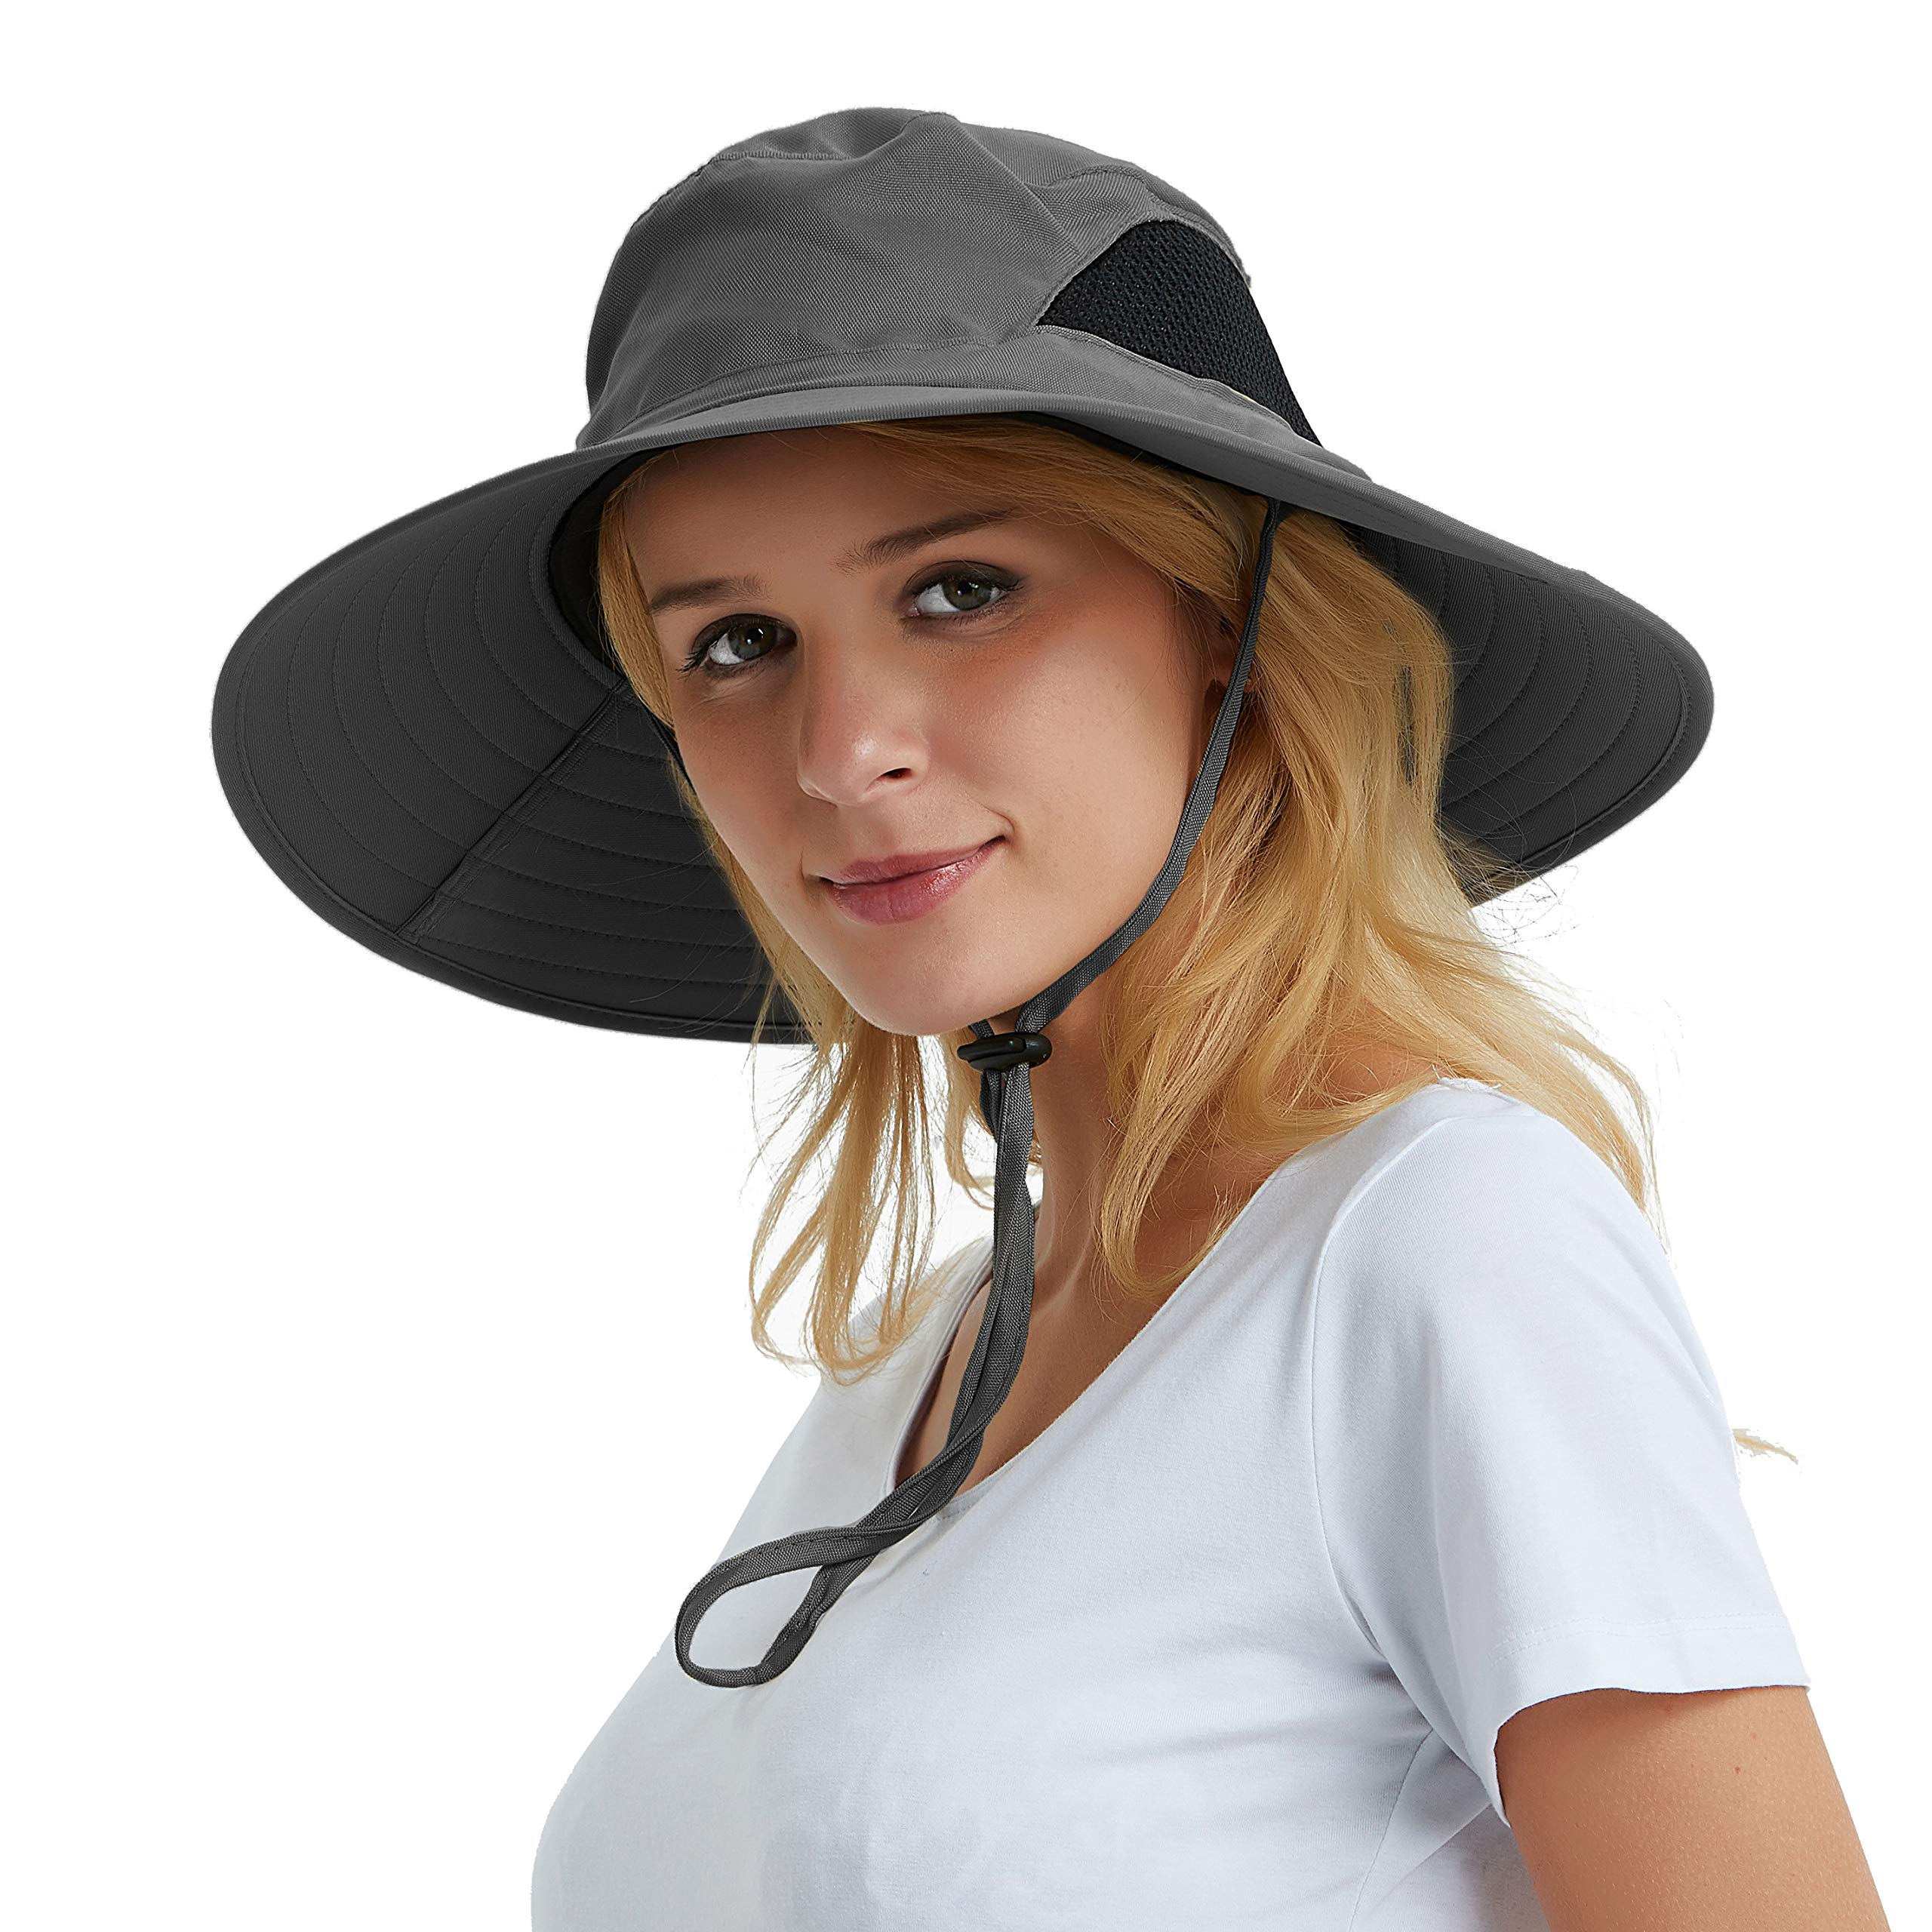 fd42b16a21e986 Women's Wide Brim Sun Hat, Outdoor Sun Protection Visor Floppy Hat Packable  Boonie Hat for